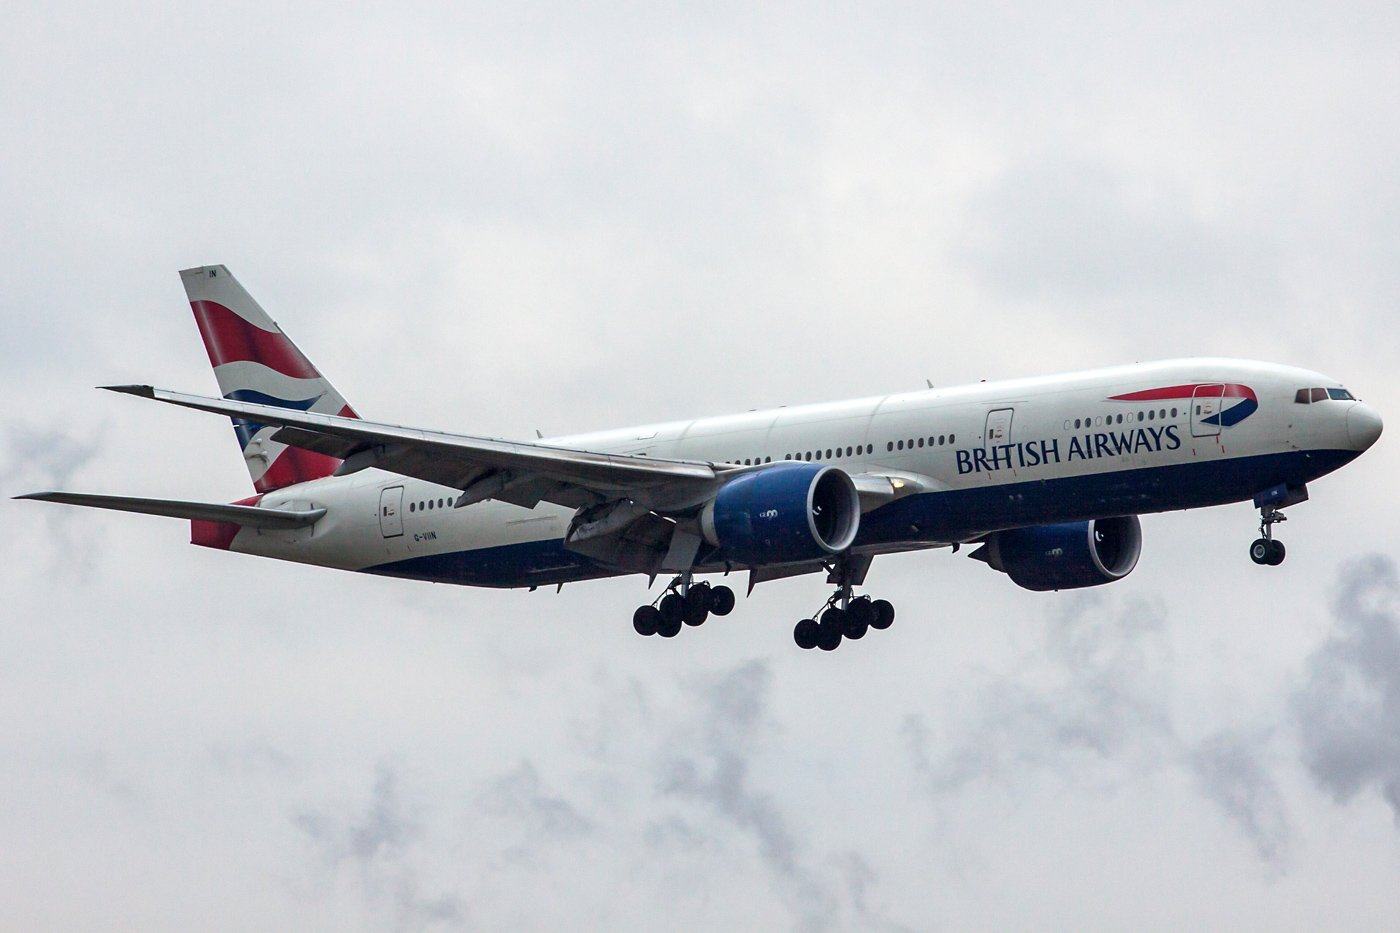 British Airways Boeing 777-236(ER) G-VIIN